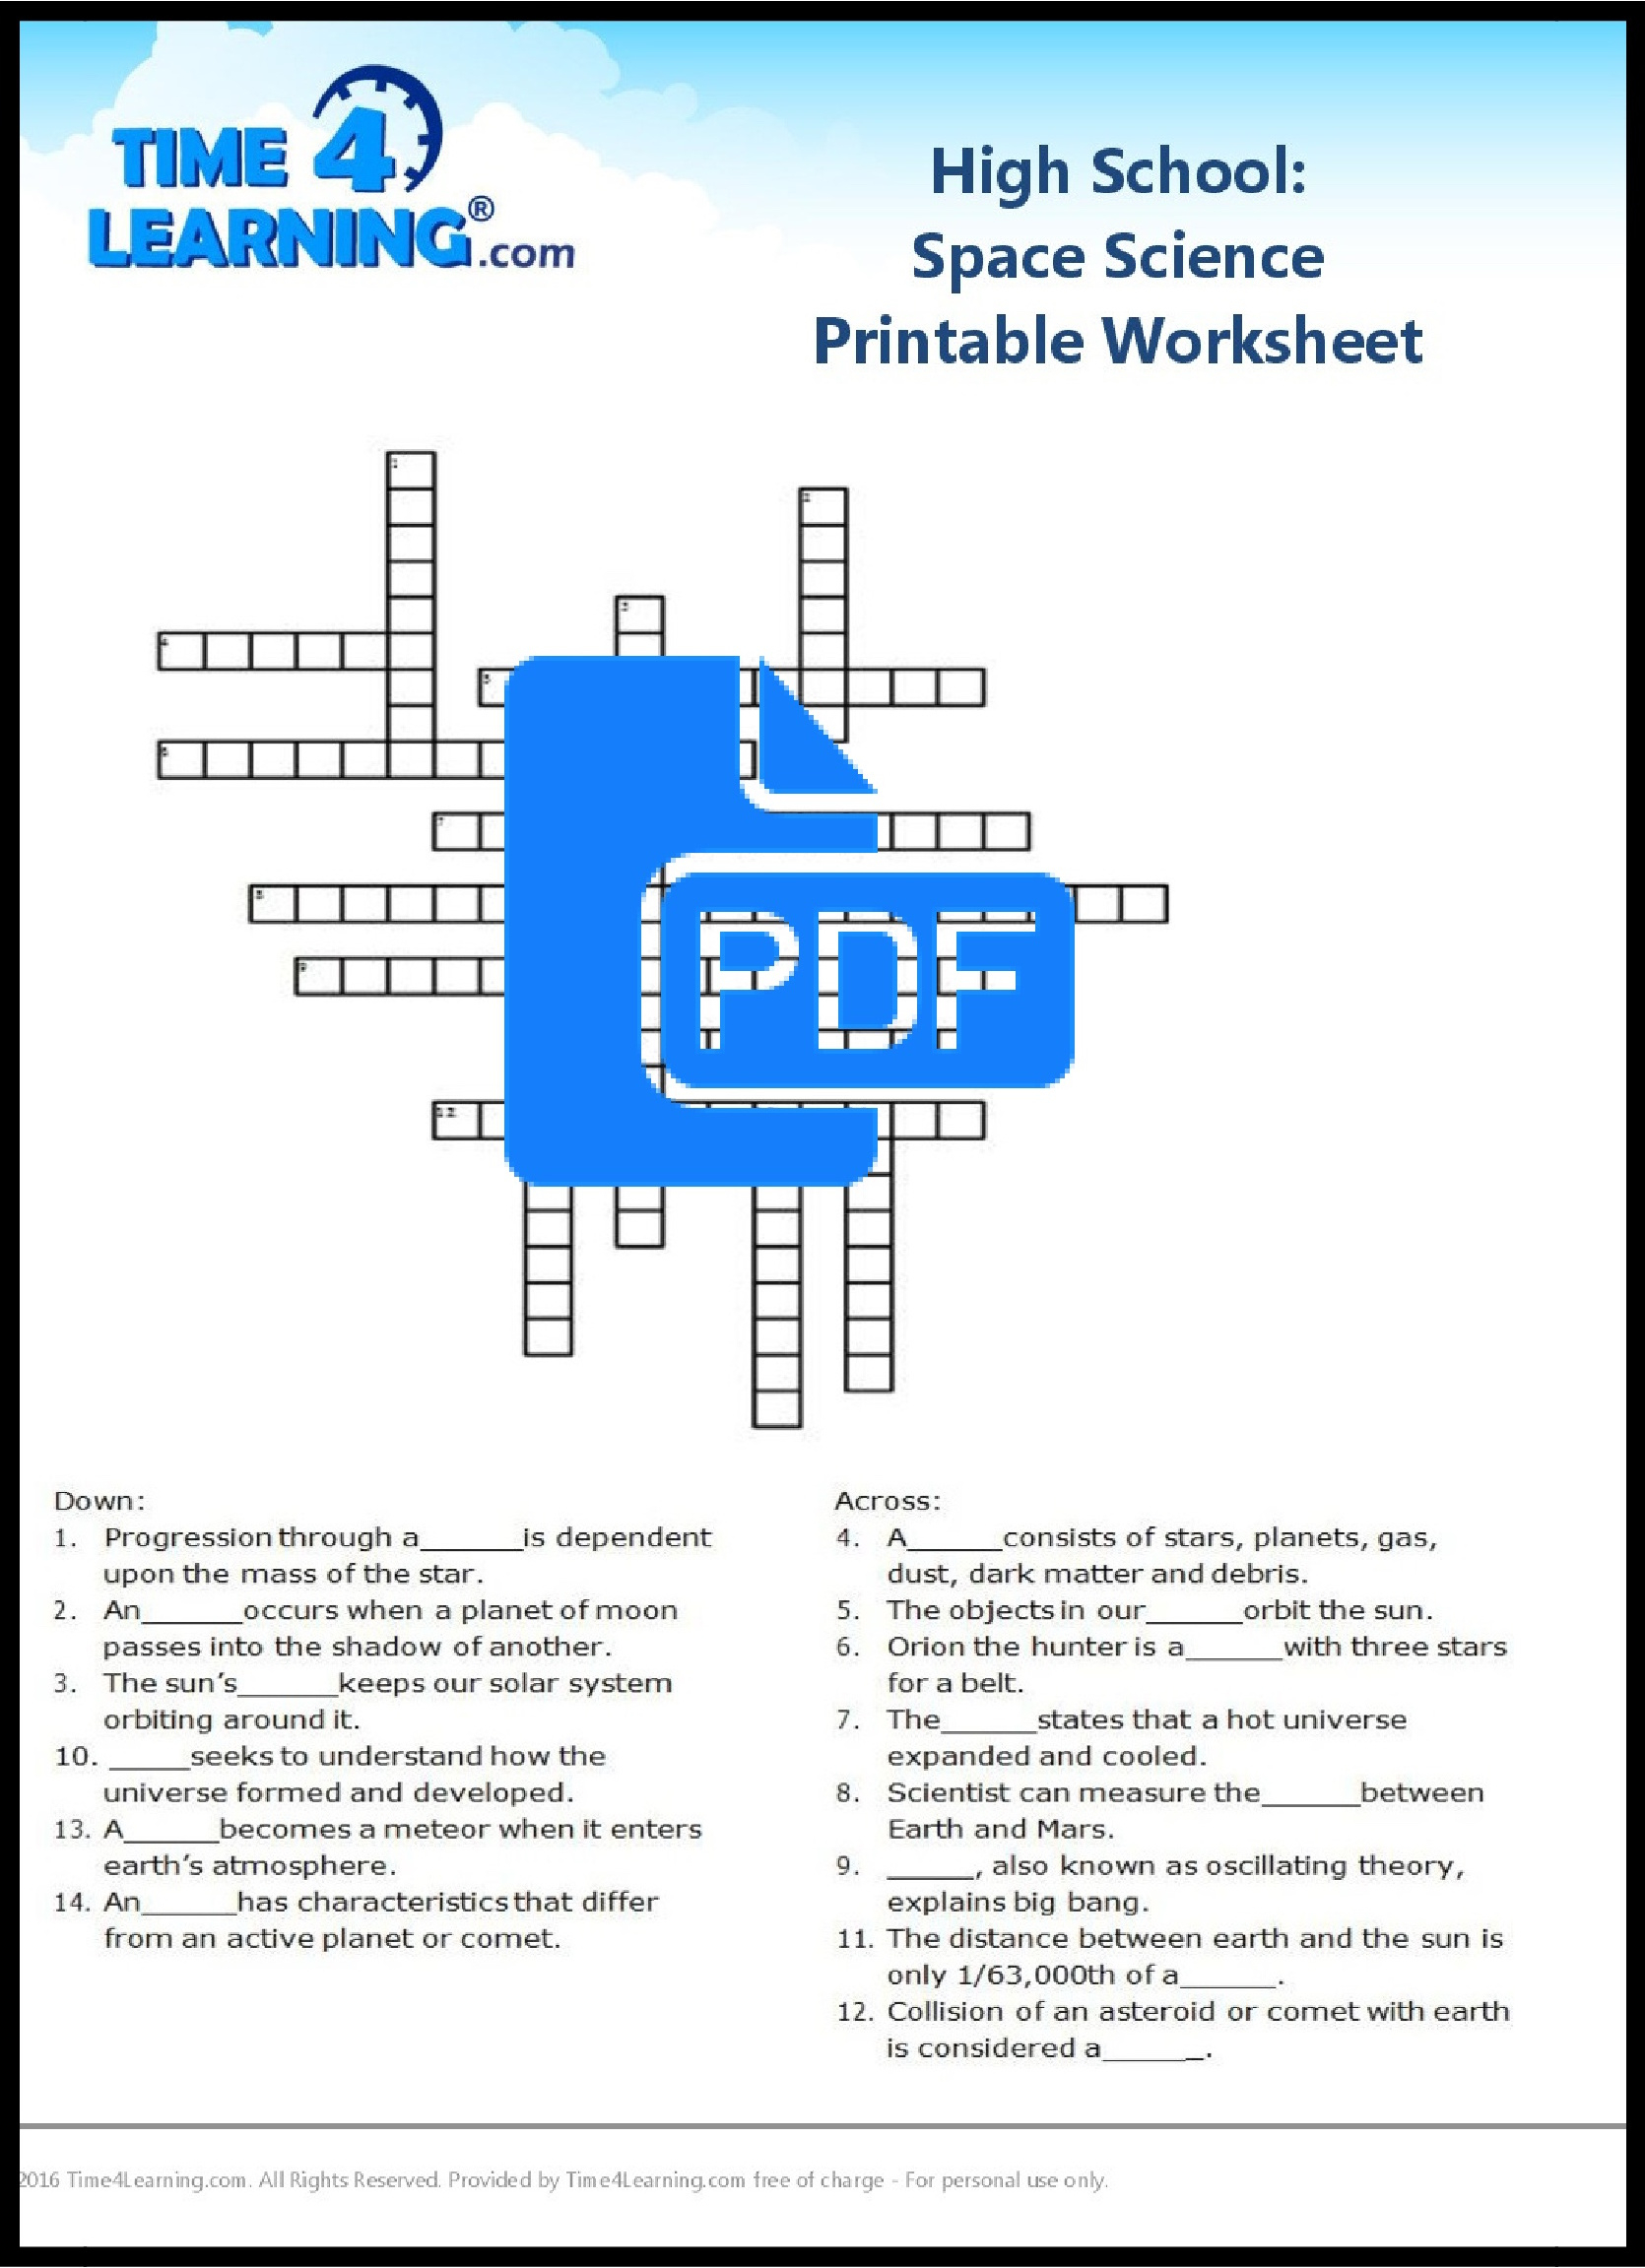 Free Printable Worksheets For High School Students